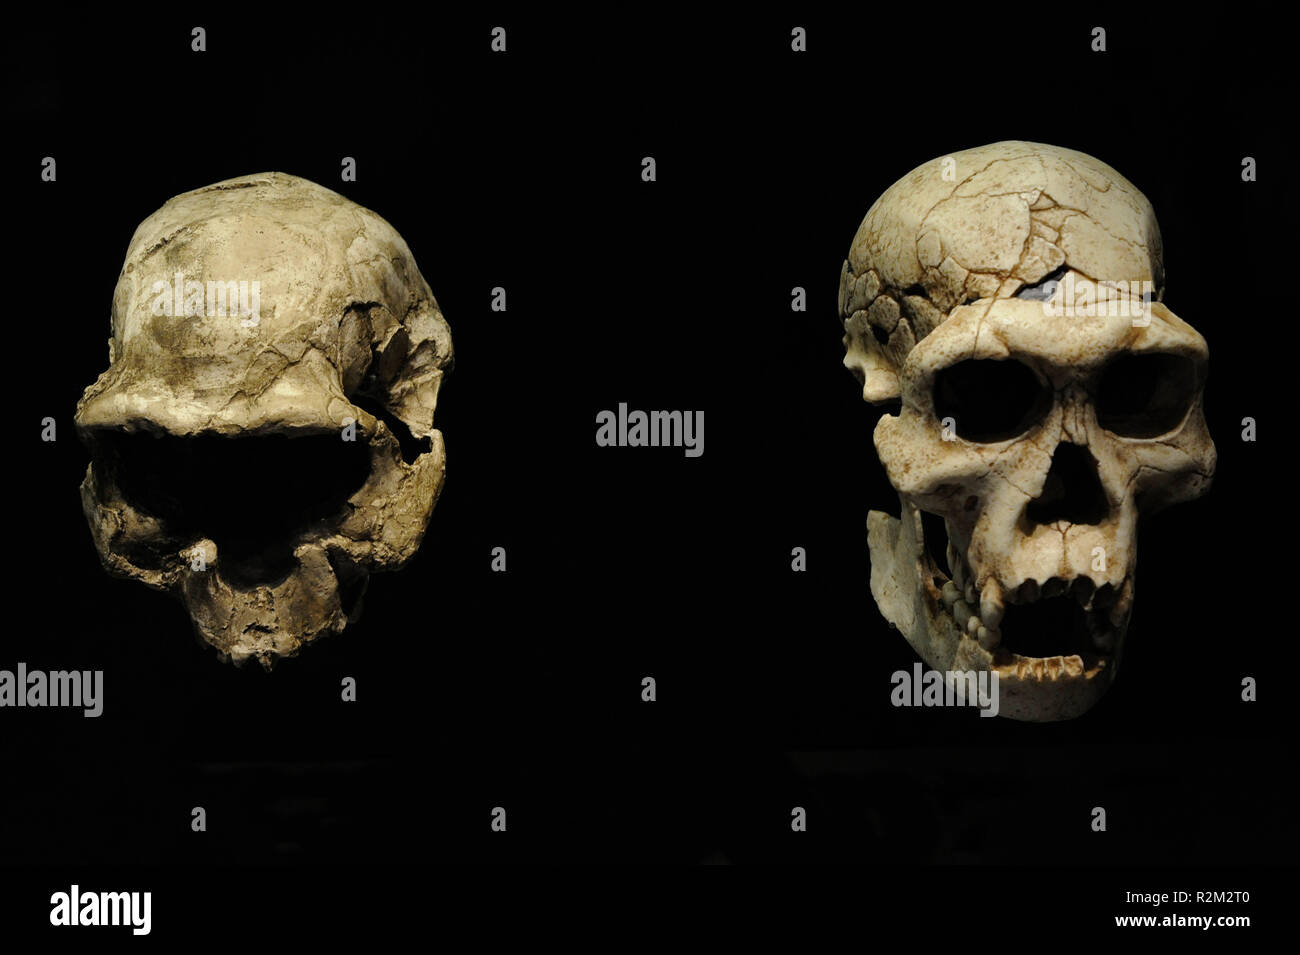 Homo georgicus. On the left, reproduction of the skull D2282 probably of a young woman. Cranial capacity, 650-660 cc; on the right, reproduction of the skull D2700 and the jaw D2735 corresponding to a male. Weight, 40-50 Kg. Size, 150 cm. Cranial capacity, 600-700 cc. 1.8 million years. Lower Pleistocene. Habitat, steppe forests. Found in Dmanisi (Georgia). National Archaeological Museum. Madrid. Spain. - Stock Image